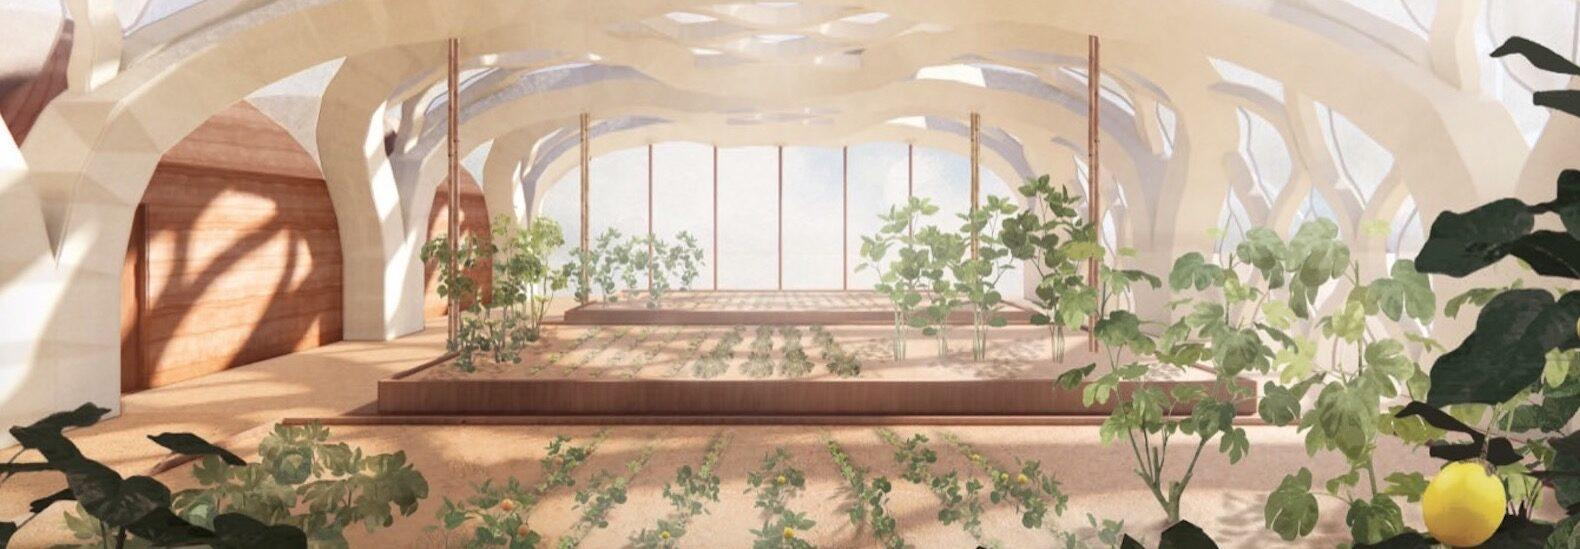 Student designs inflatable bamboo greenhouses for sustainable farming